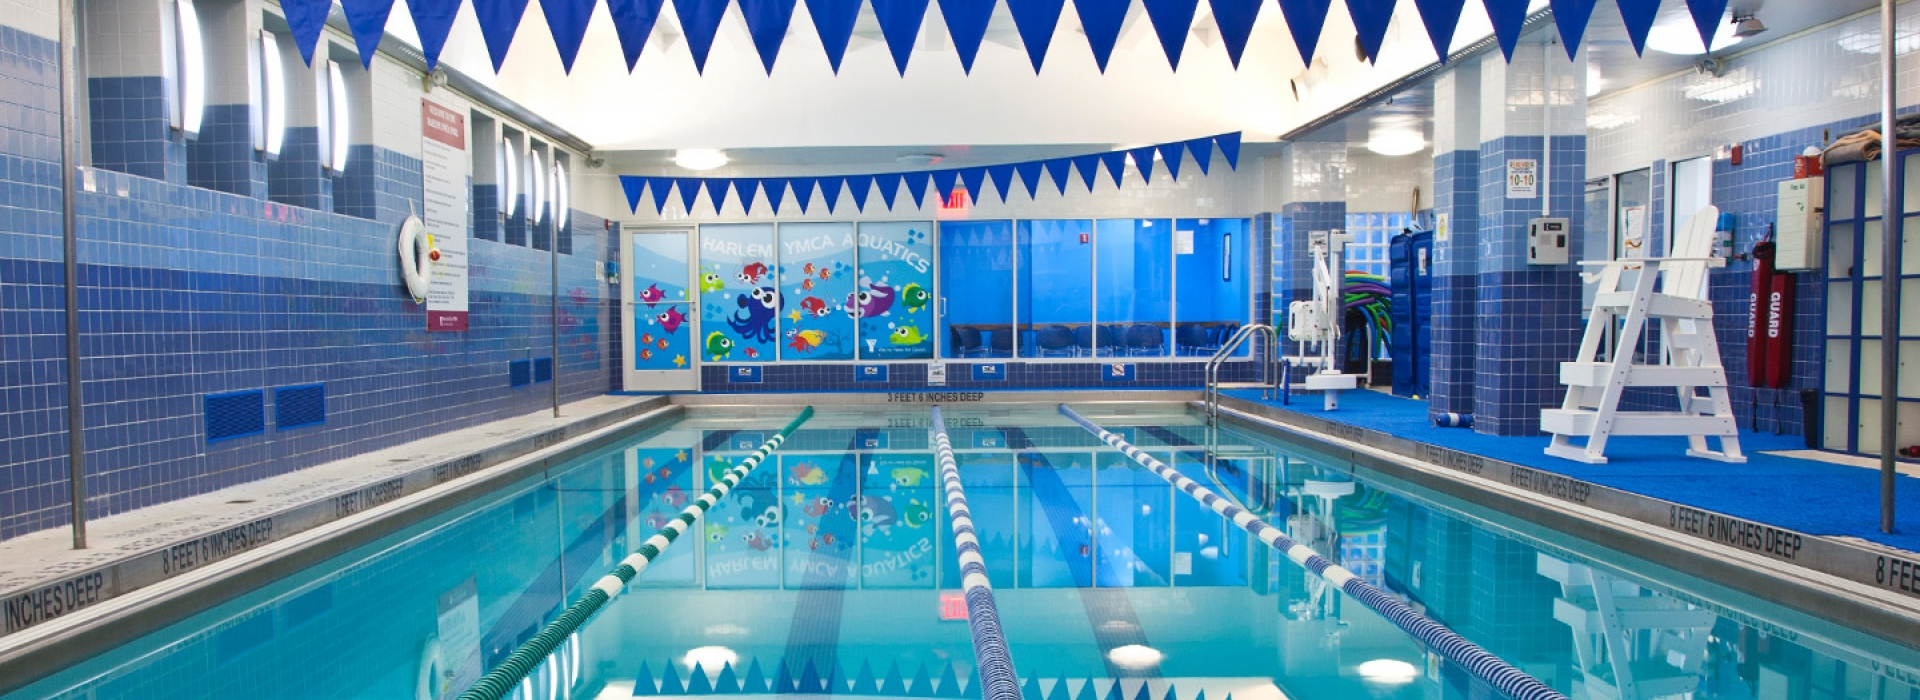 About harlem ymca new york city 39 s ymca for Williams indoor pool swim lessons